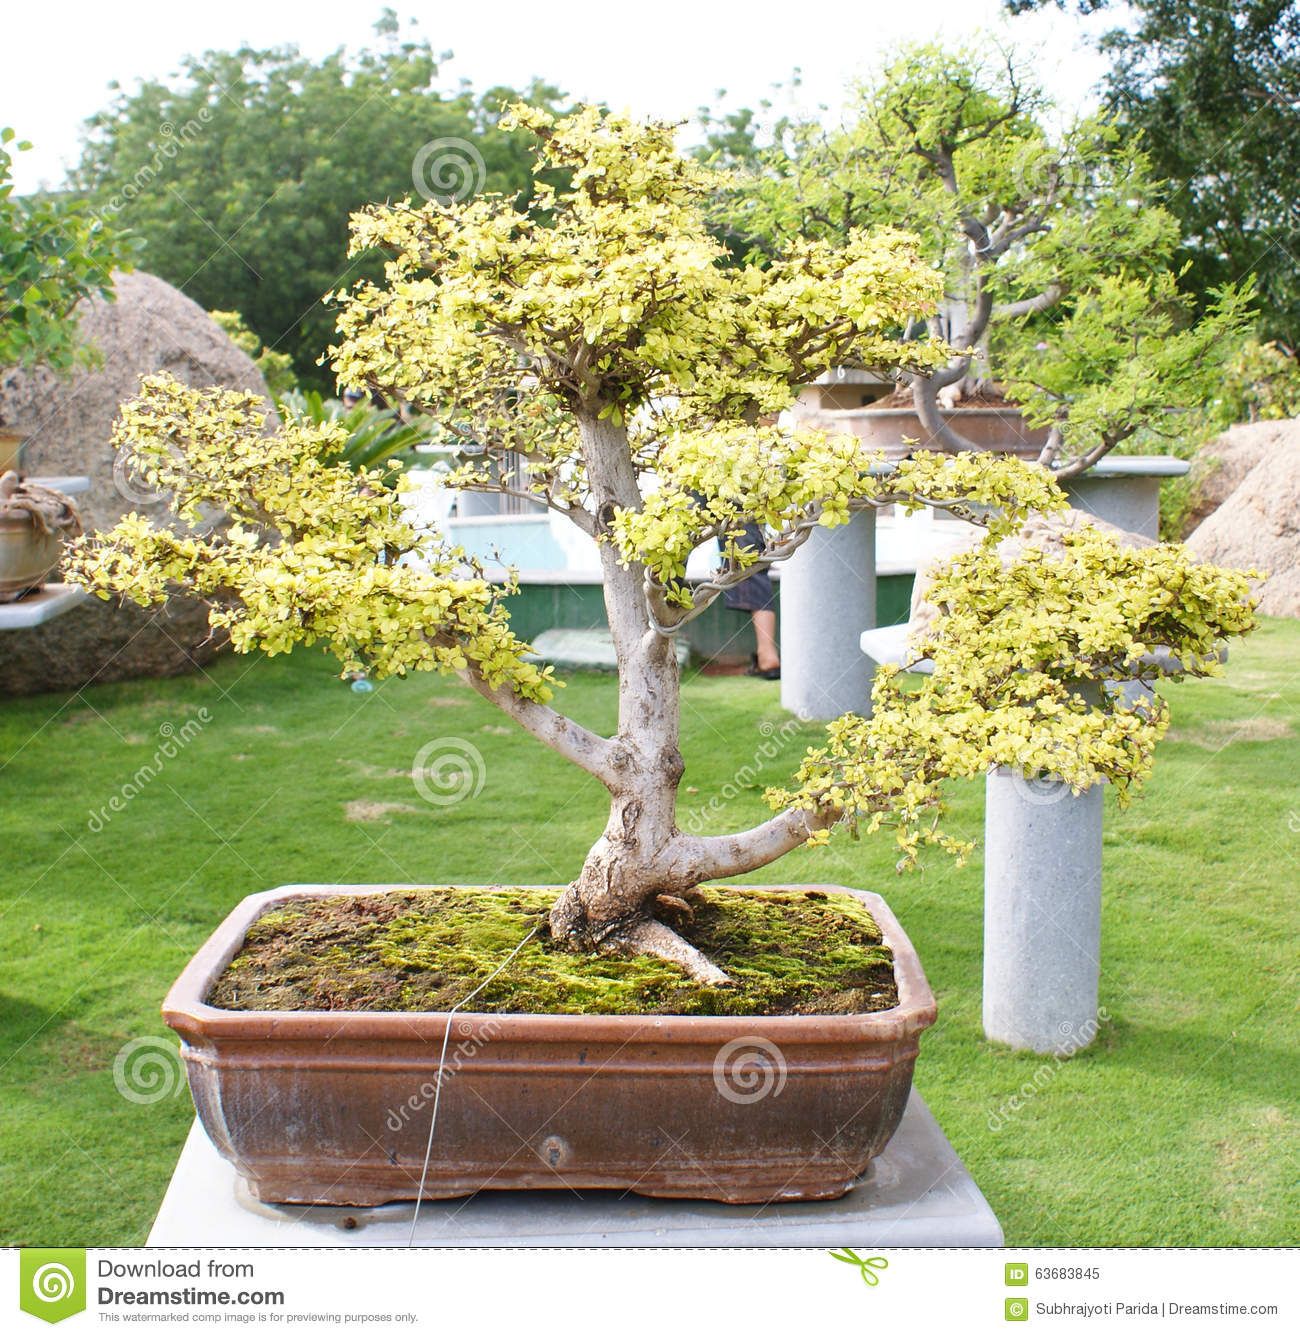 A Bonsai Banyan Tree In Ramoji Filmcity, Hyderabad Stock